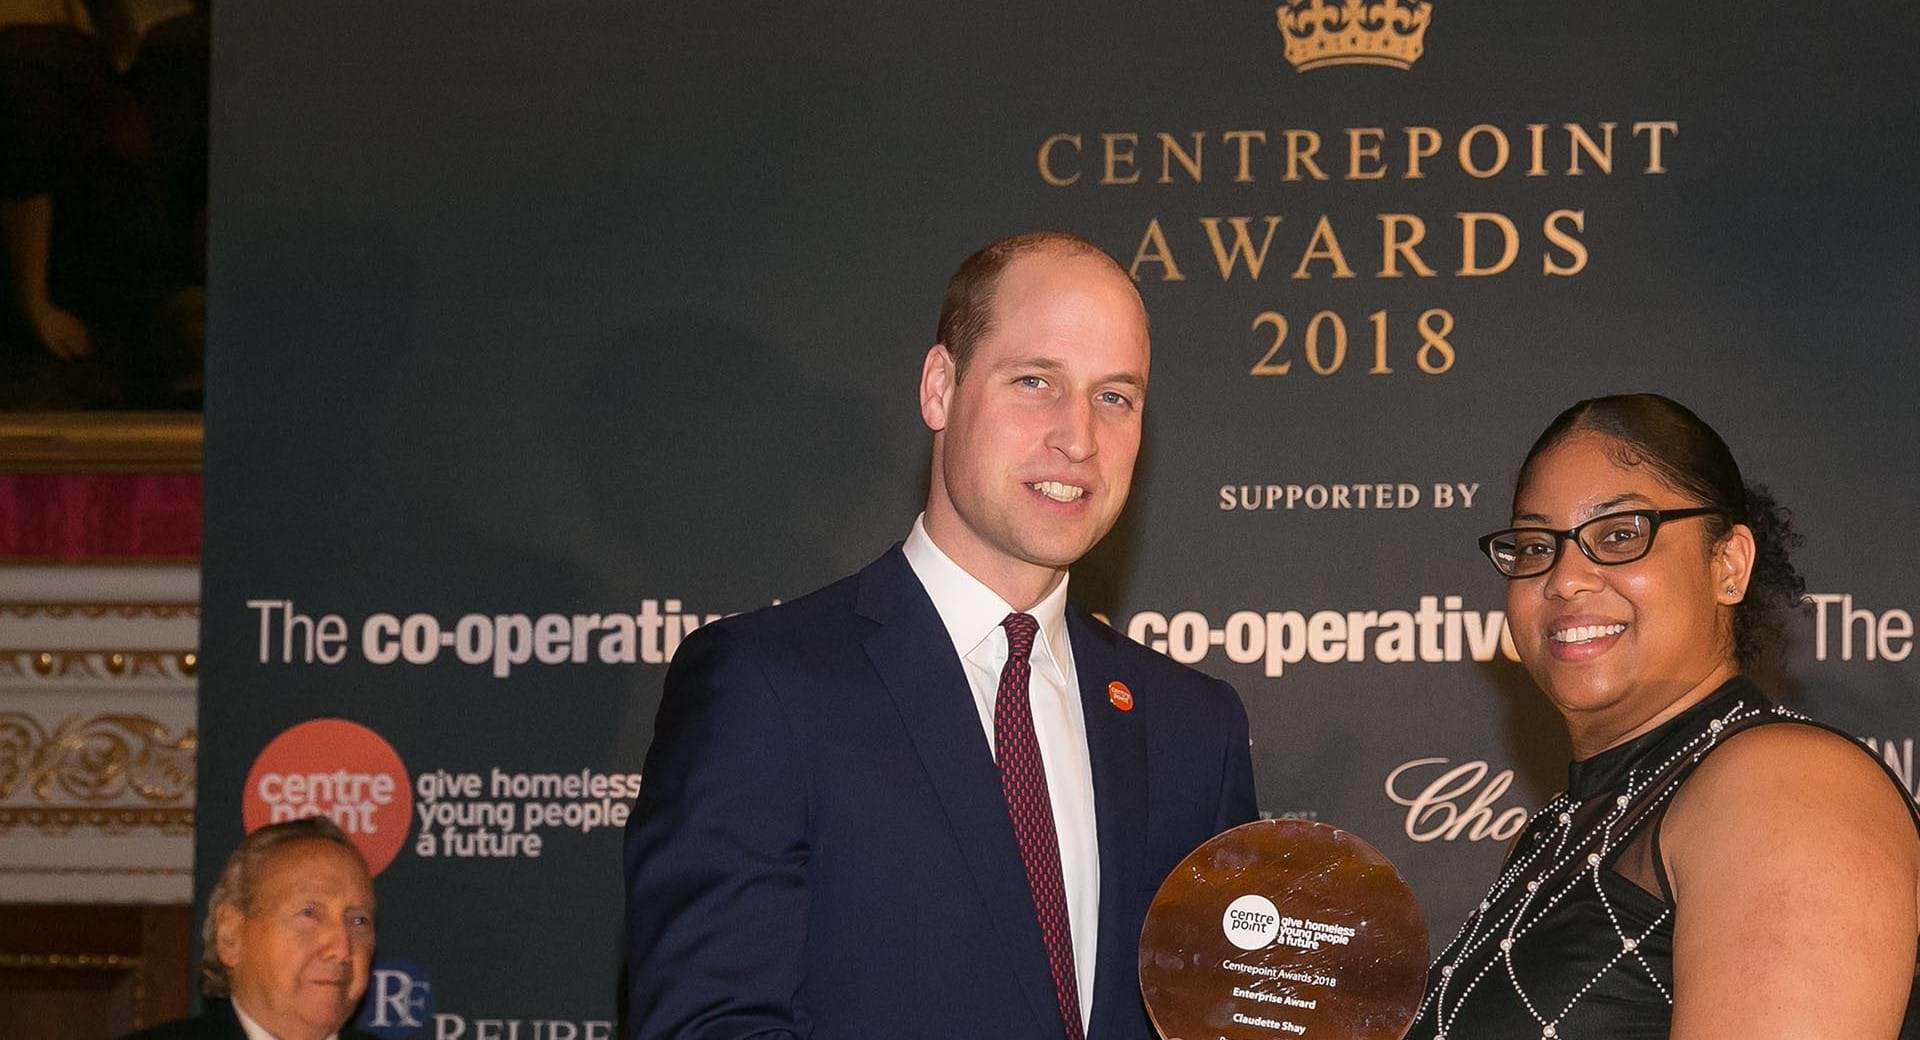 Centrepoint Award winner Claudette with HRH The Duke of Cambridge